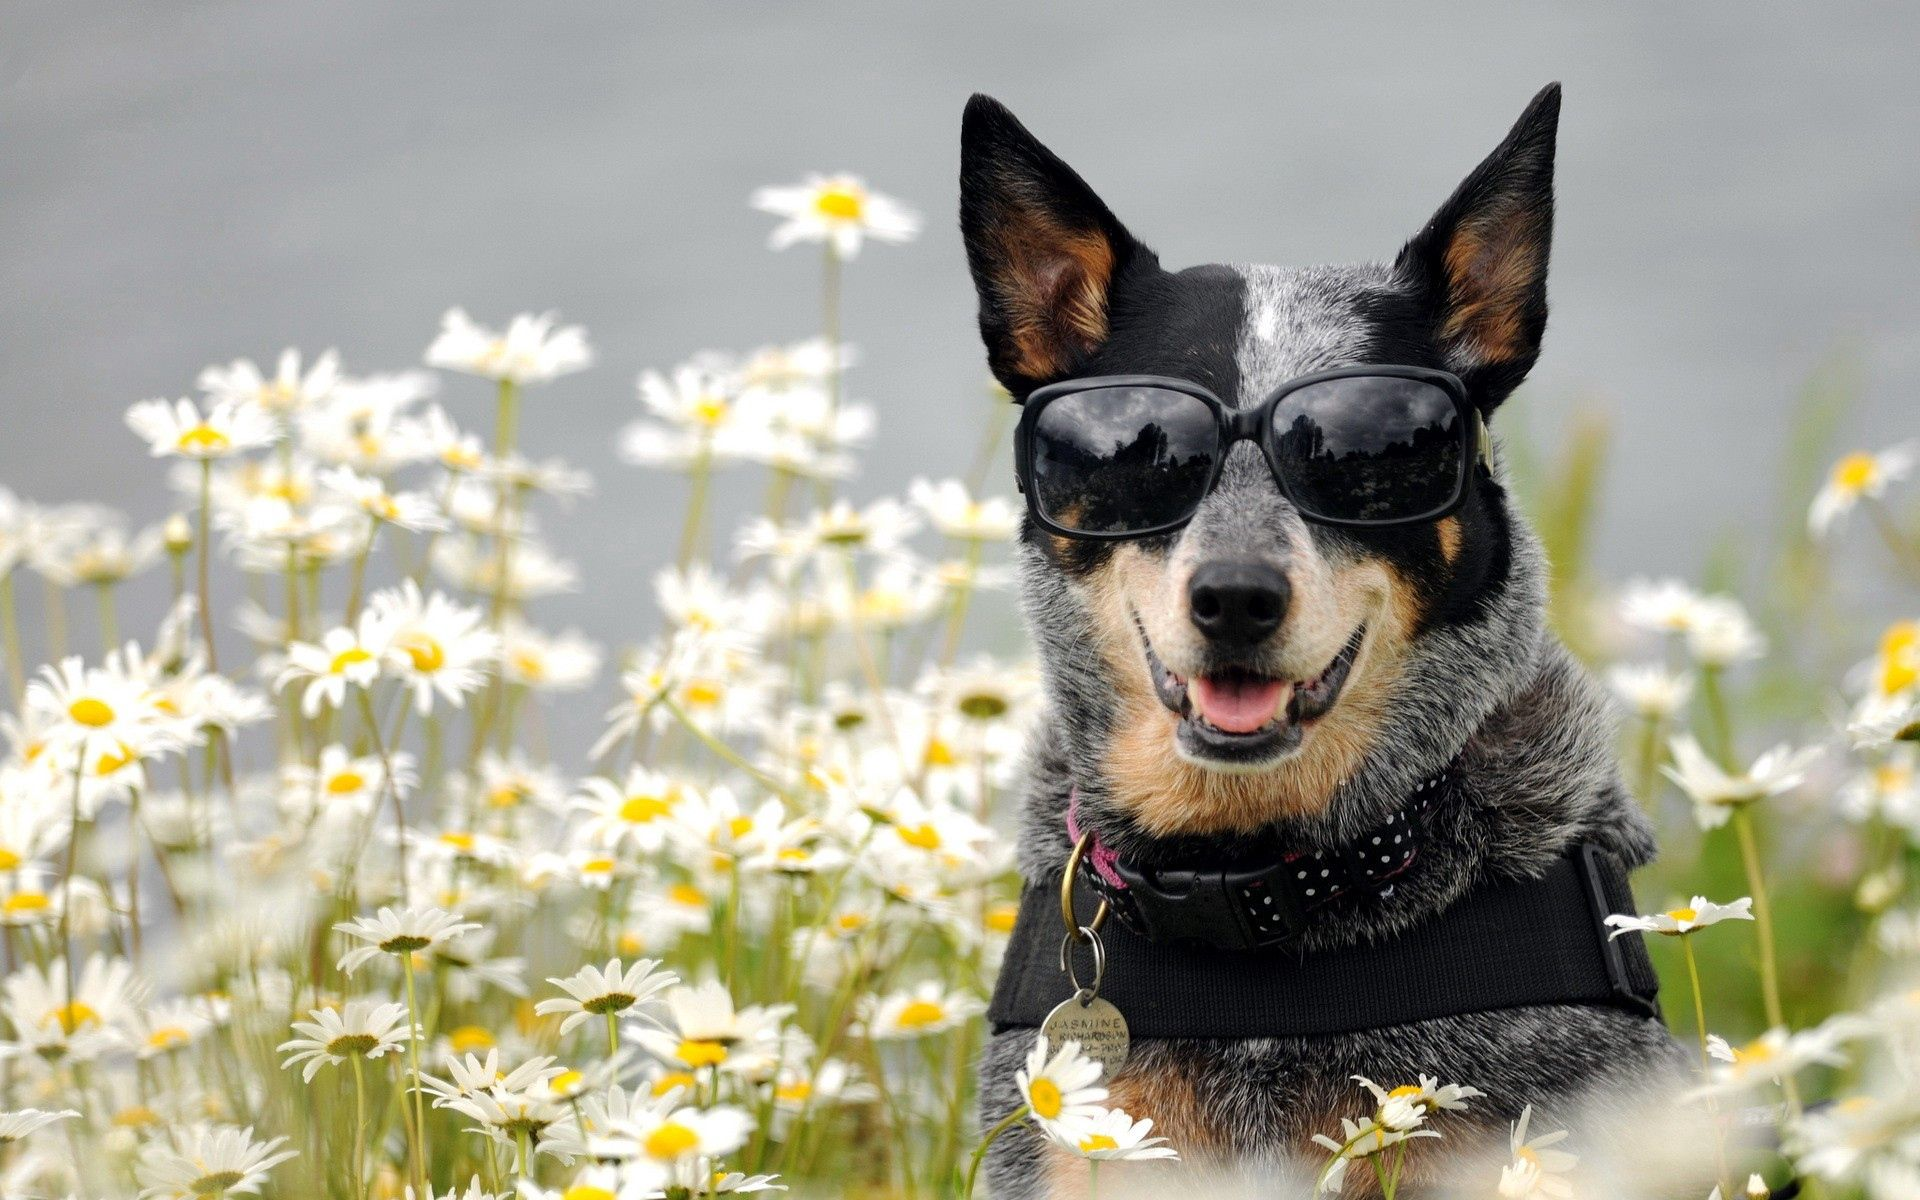 79460 download wallpaper Animals, Dog, Glasses, Spectacles, Muzzle, Flowers screensavers and pictures for free